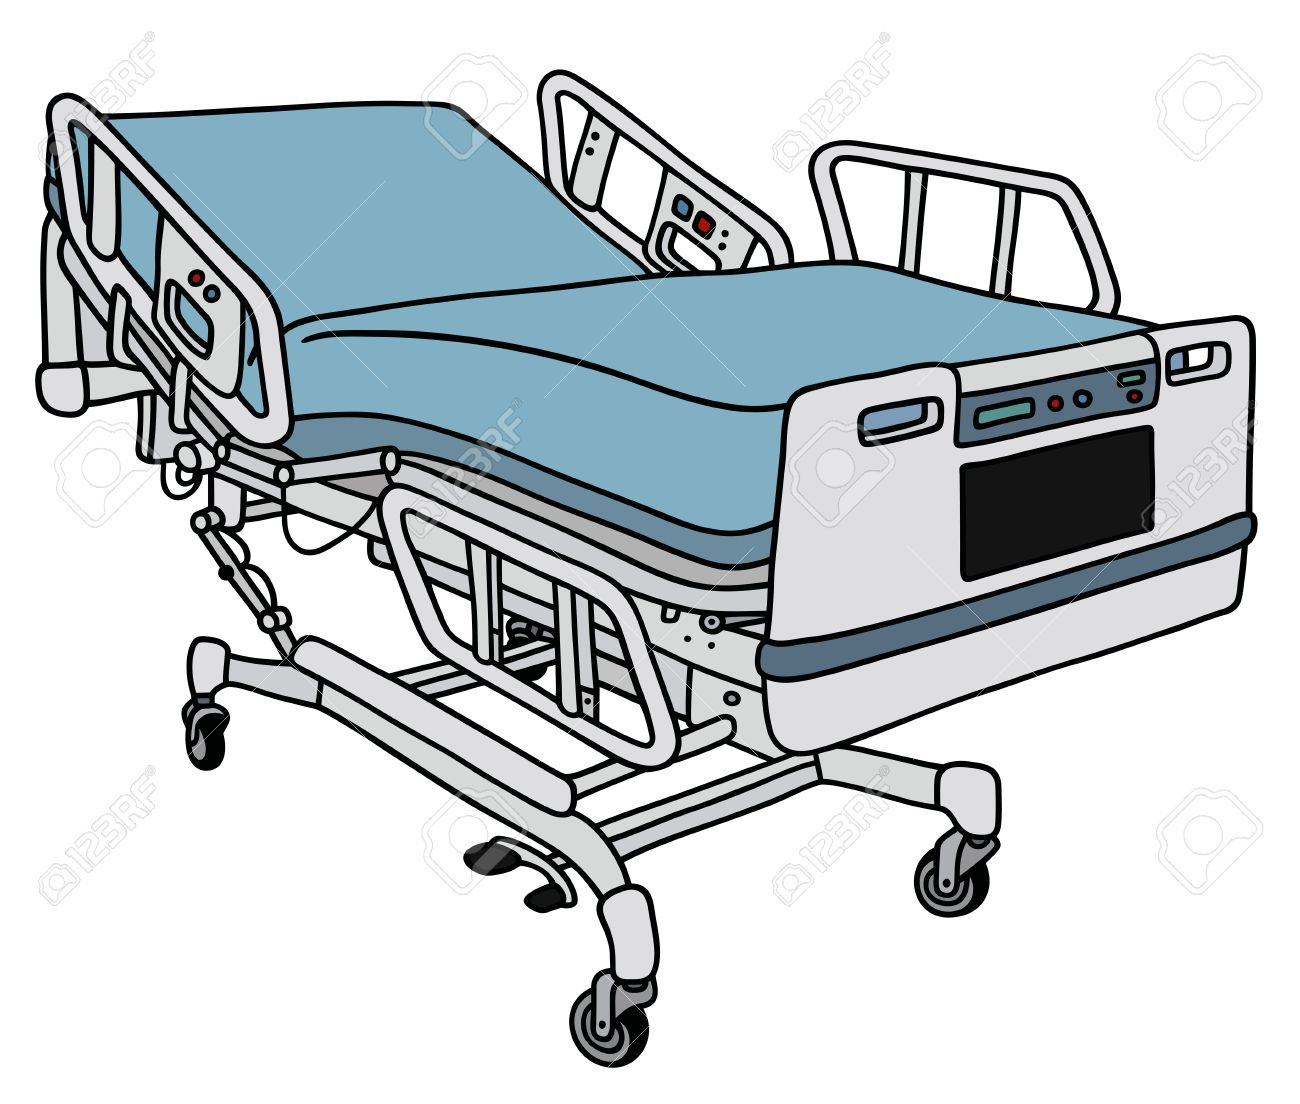 Bedroom clipart hospital.  collection of bed